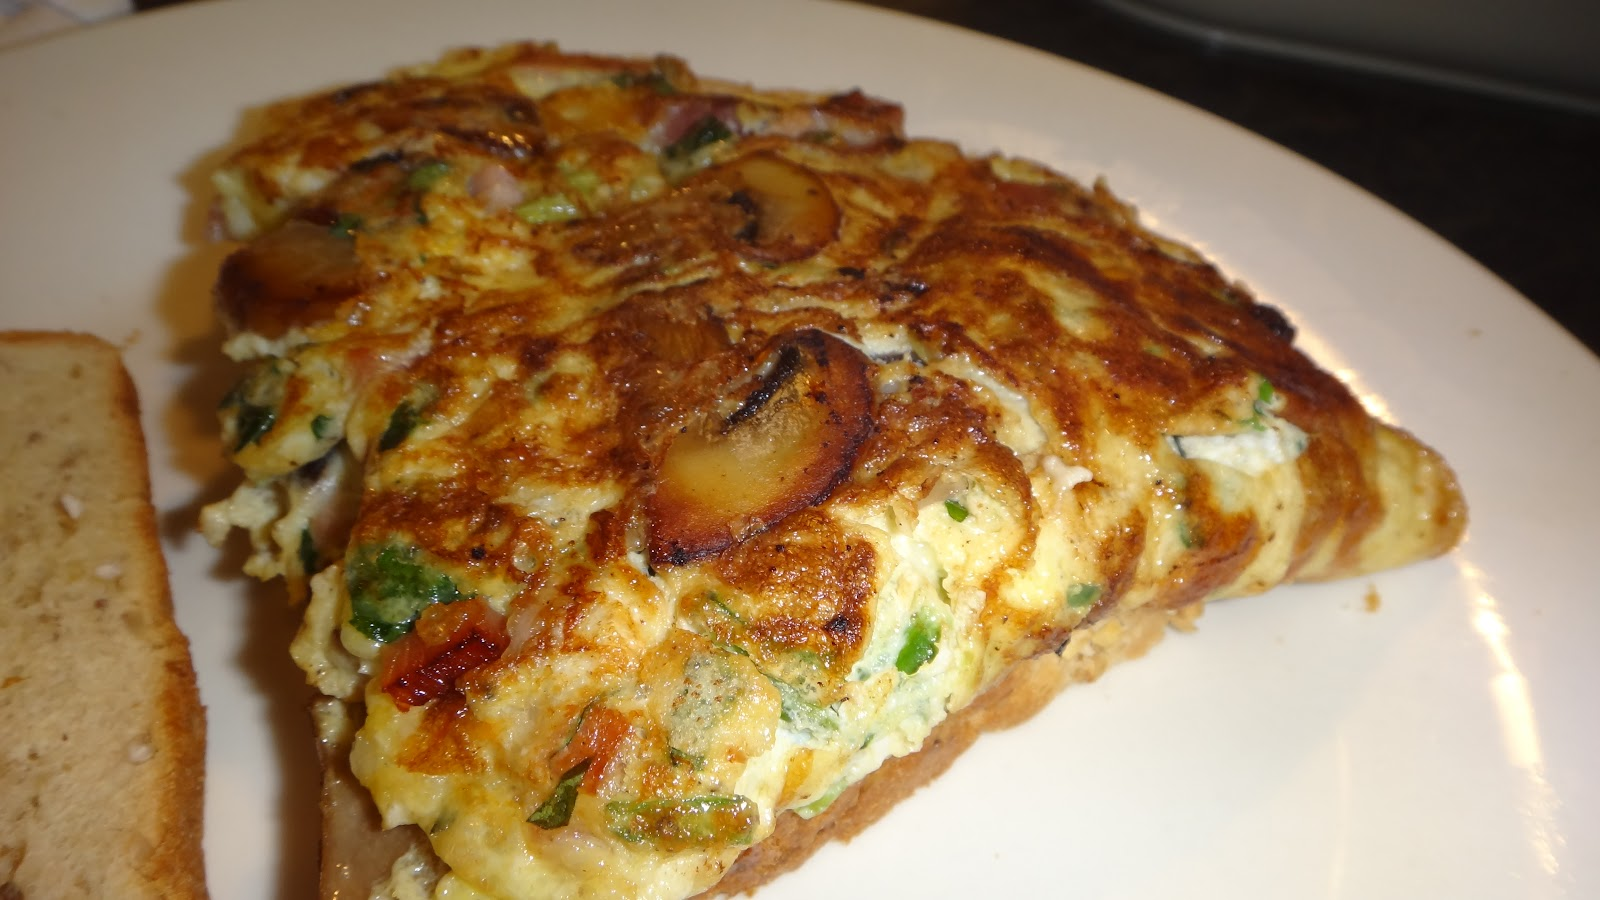 Toasted Western or Denver Omelet Sandwich « I WANT TO COOK THAT